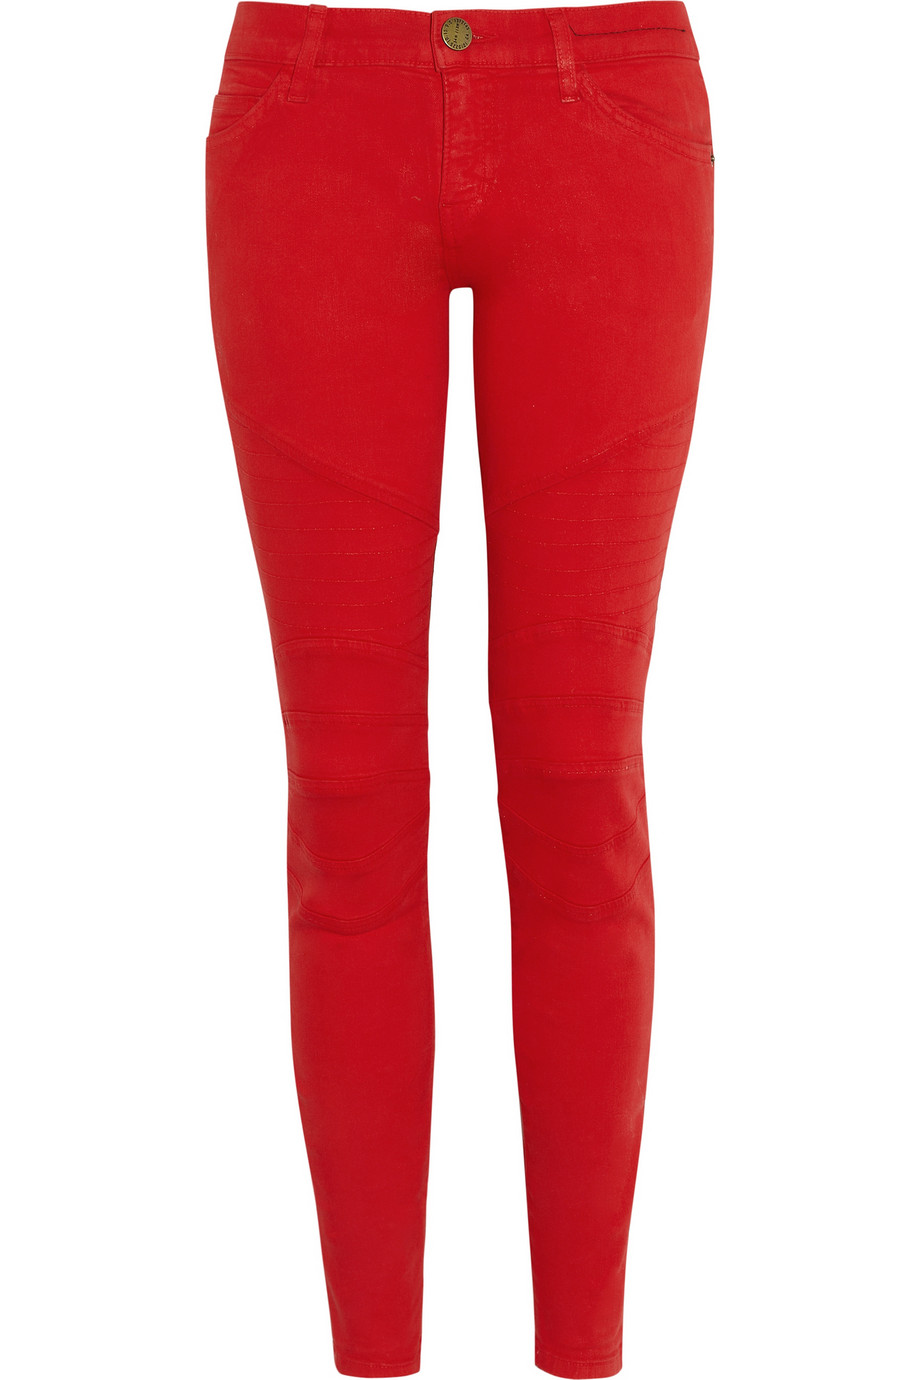 Current/elliott The Moto Coated Lowrise Skinny Jeans in Red | Lyst